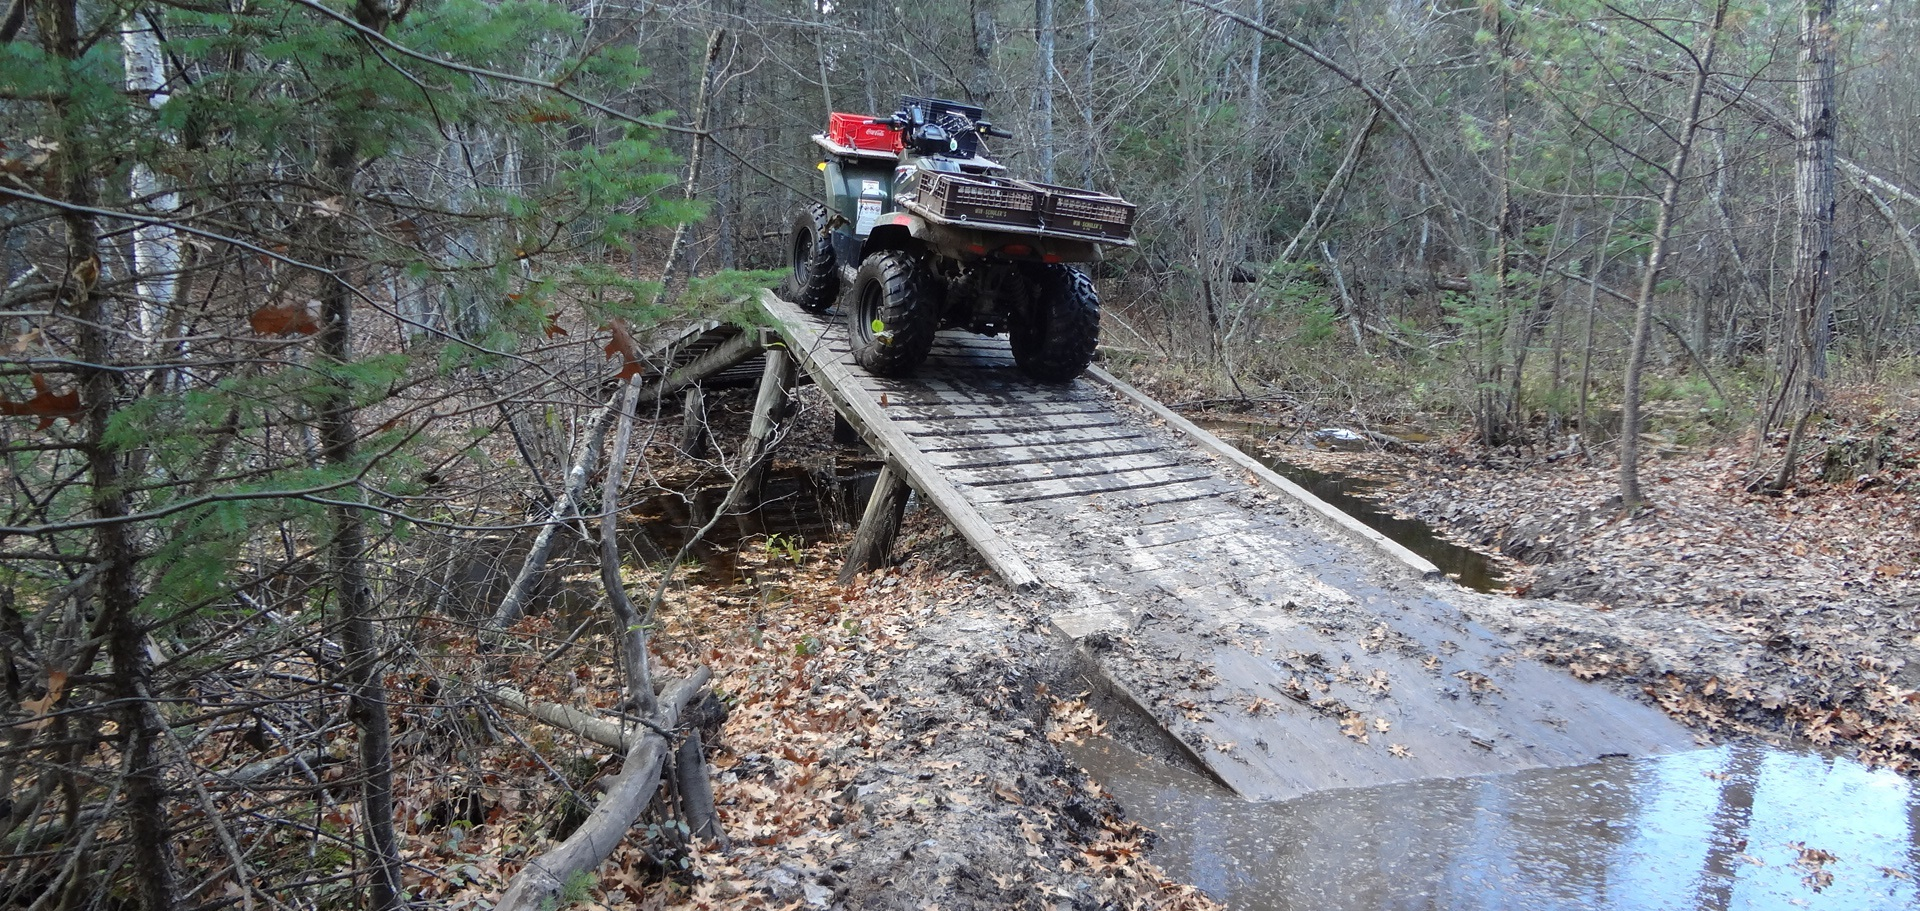 Decking along the Geels Trail in Roscommon County is among the improvements to the Lower Peninsula off-road vehicle trails network.